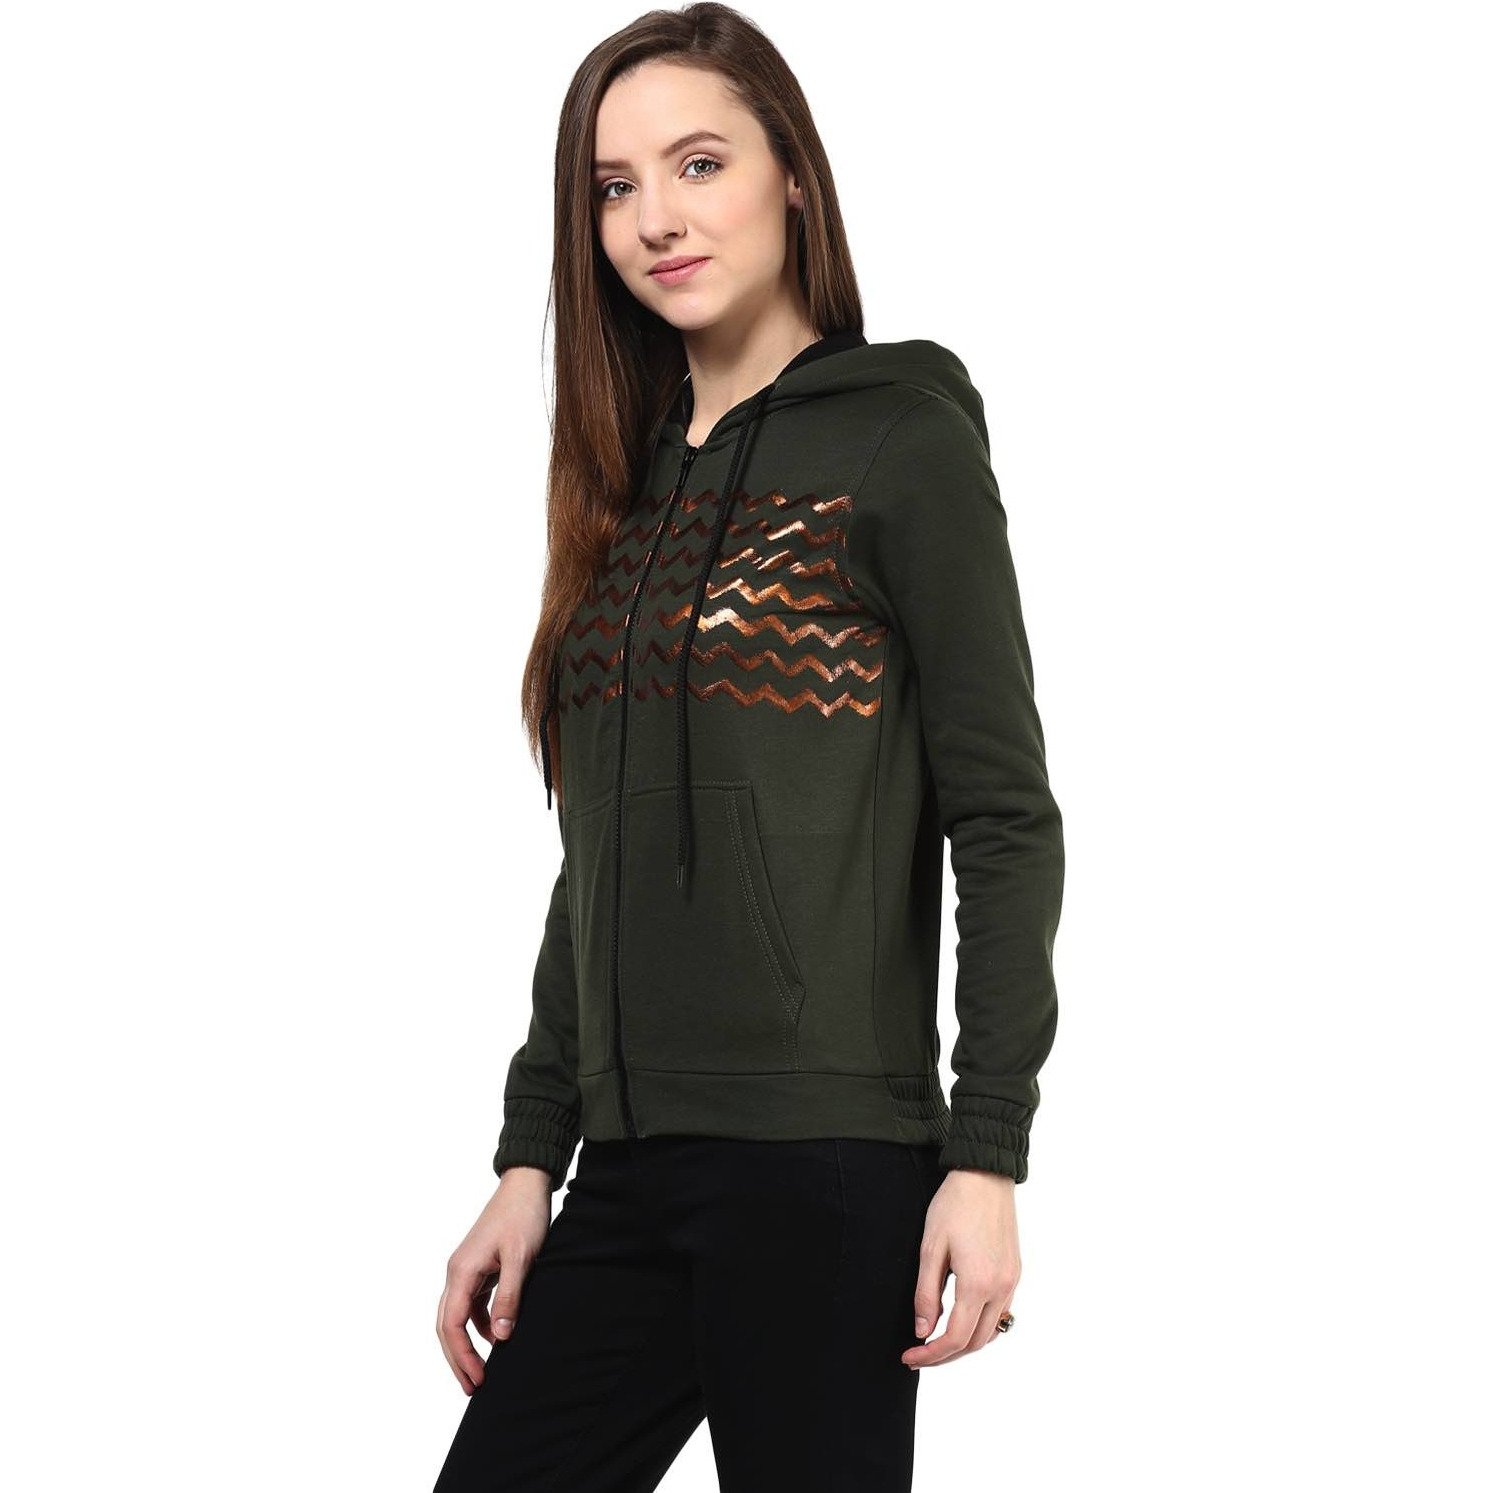 Hooded Sweatshirt In Green Color With Distressed Print (Size:S)